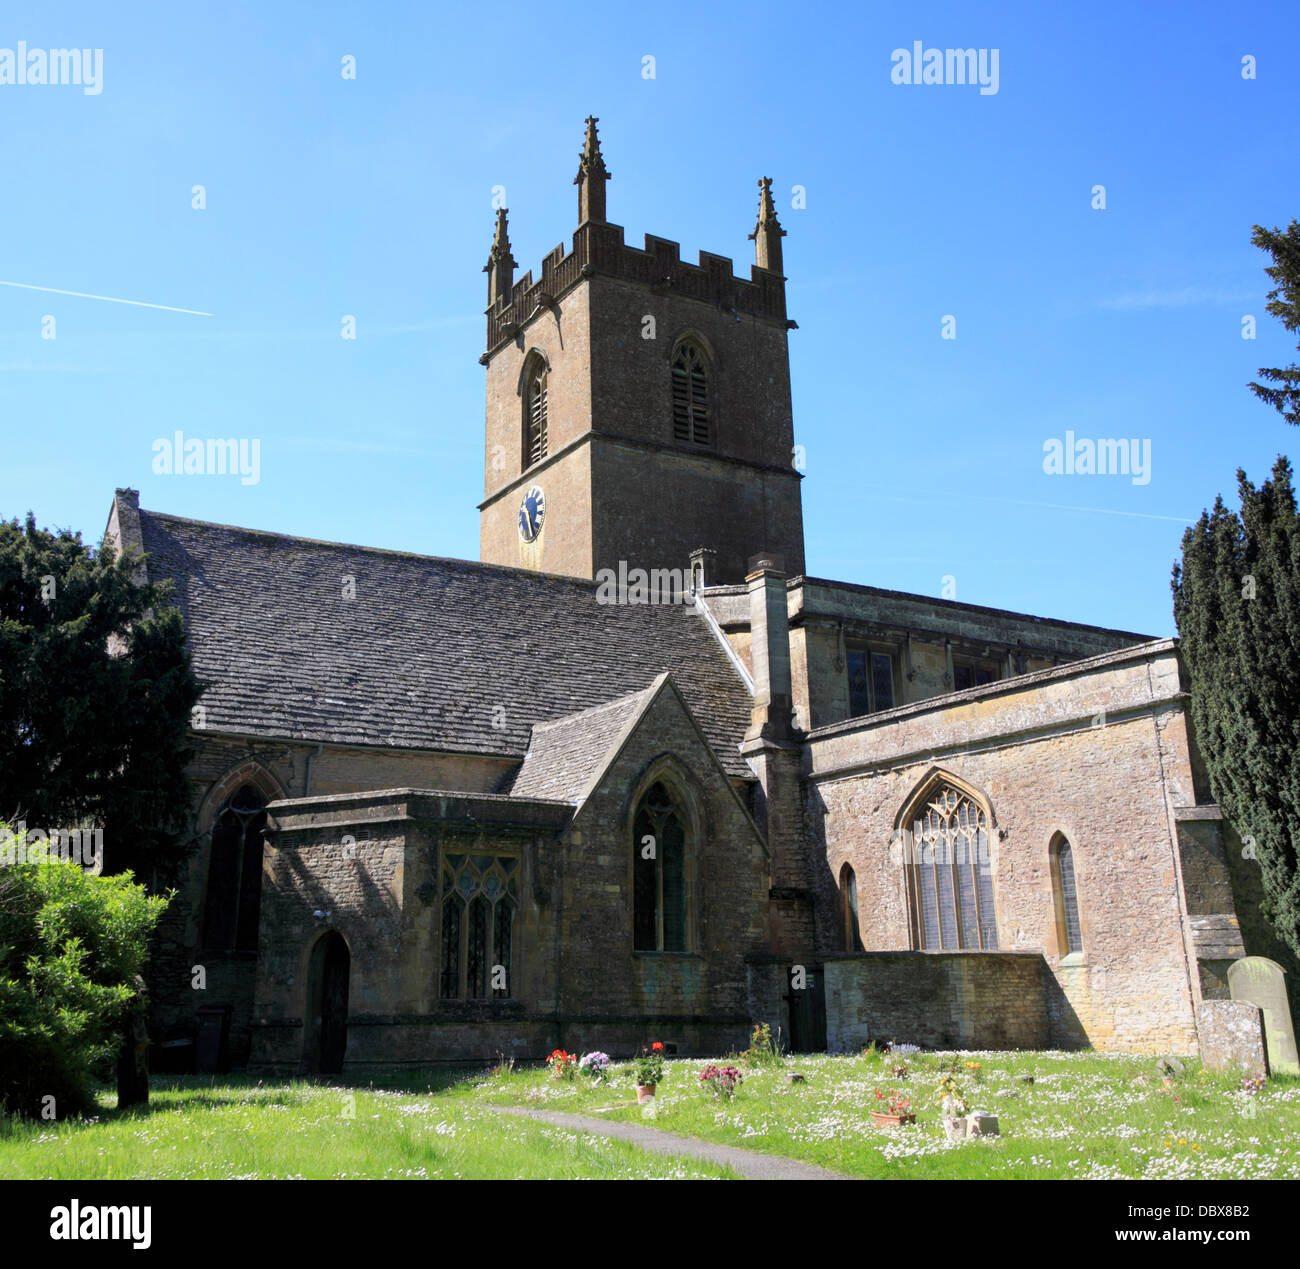 St Edwards Church Stow on the Wold Stock Photo